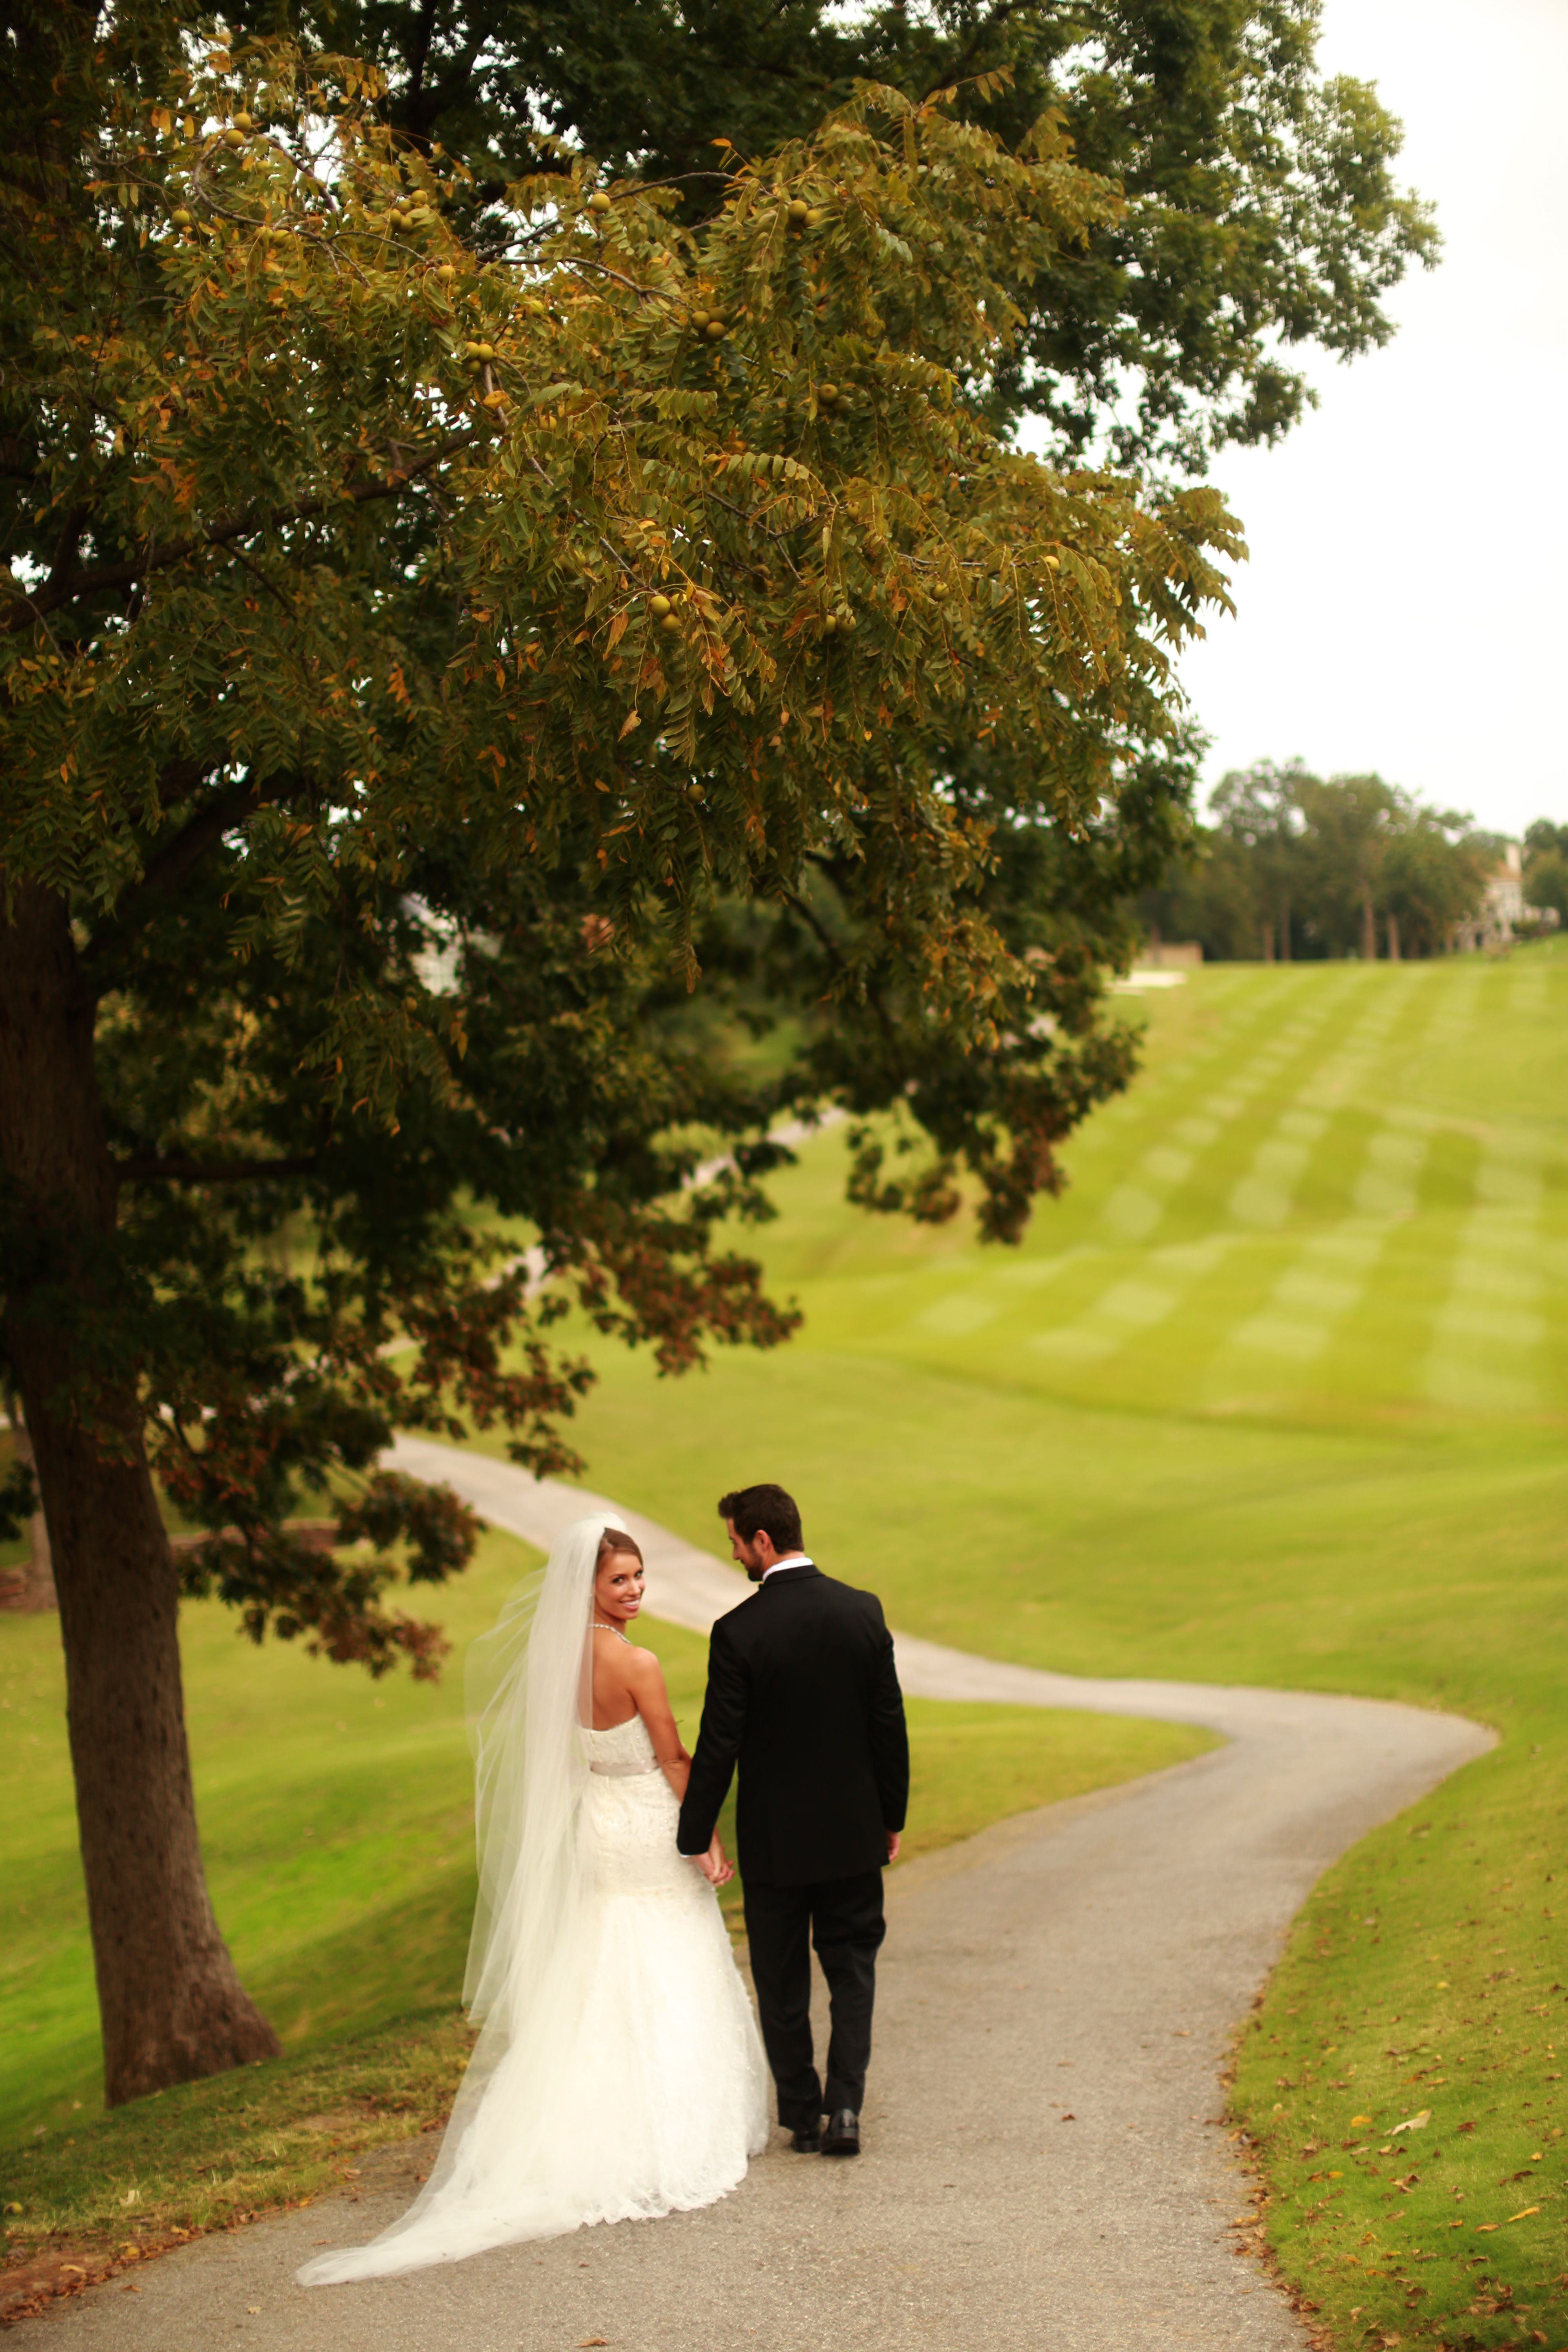 inland empire wedding venue diamond bar golf course la county golf course wedding country club wedding arkansas wedding photo courtesy benfield photography fayetteville arkansas